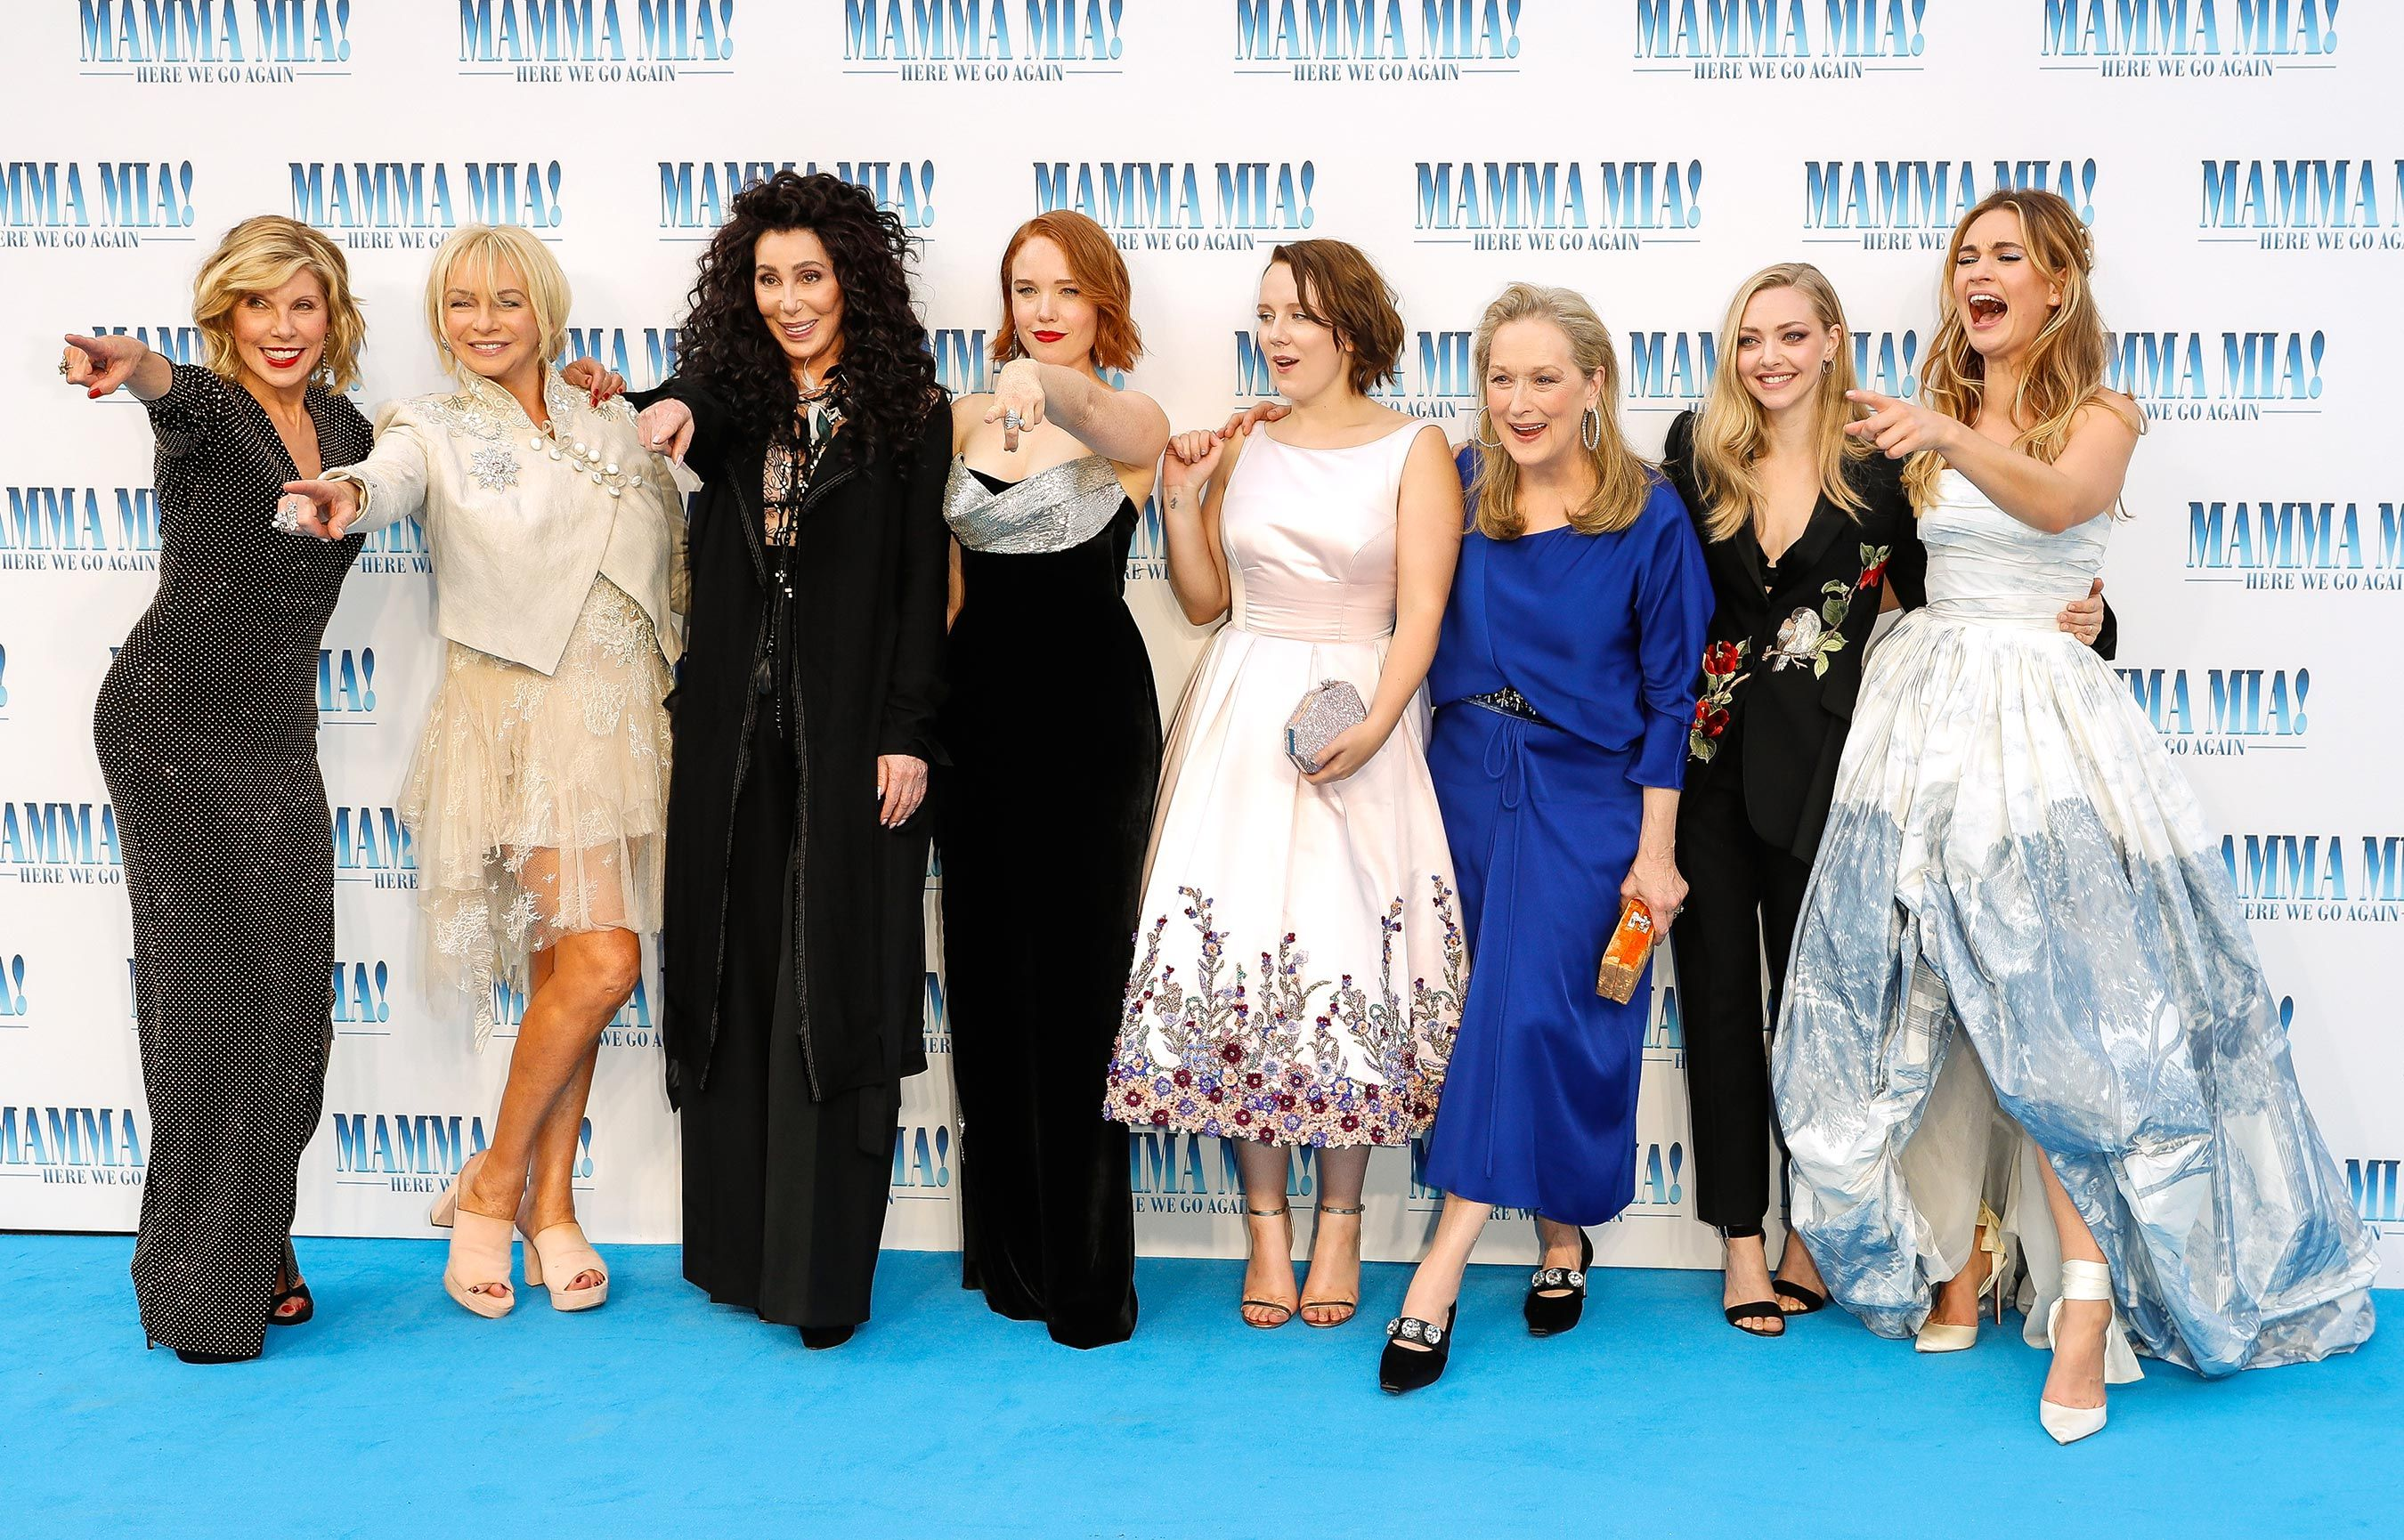 See all the stars at the 'Mamma Mia! Here We Go Again